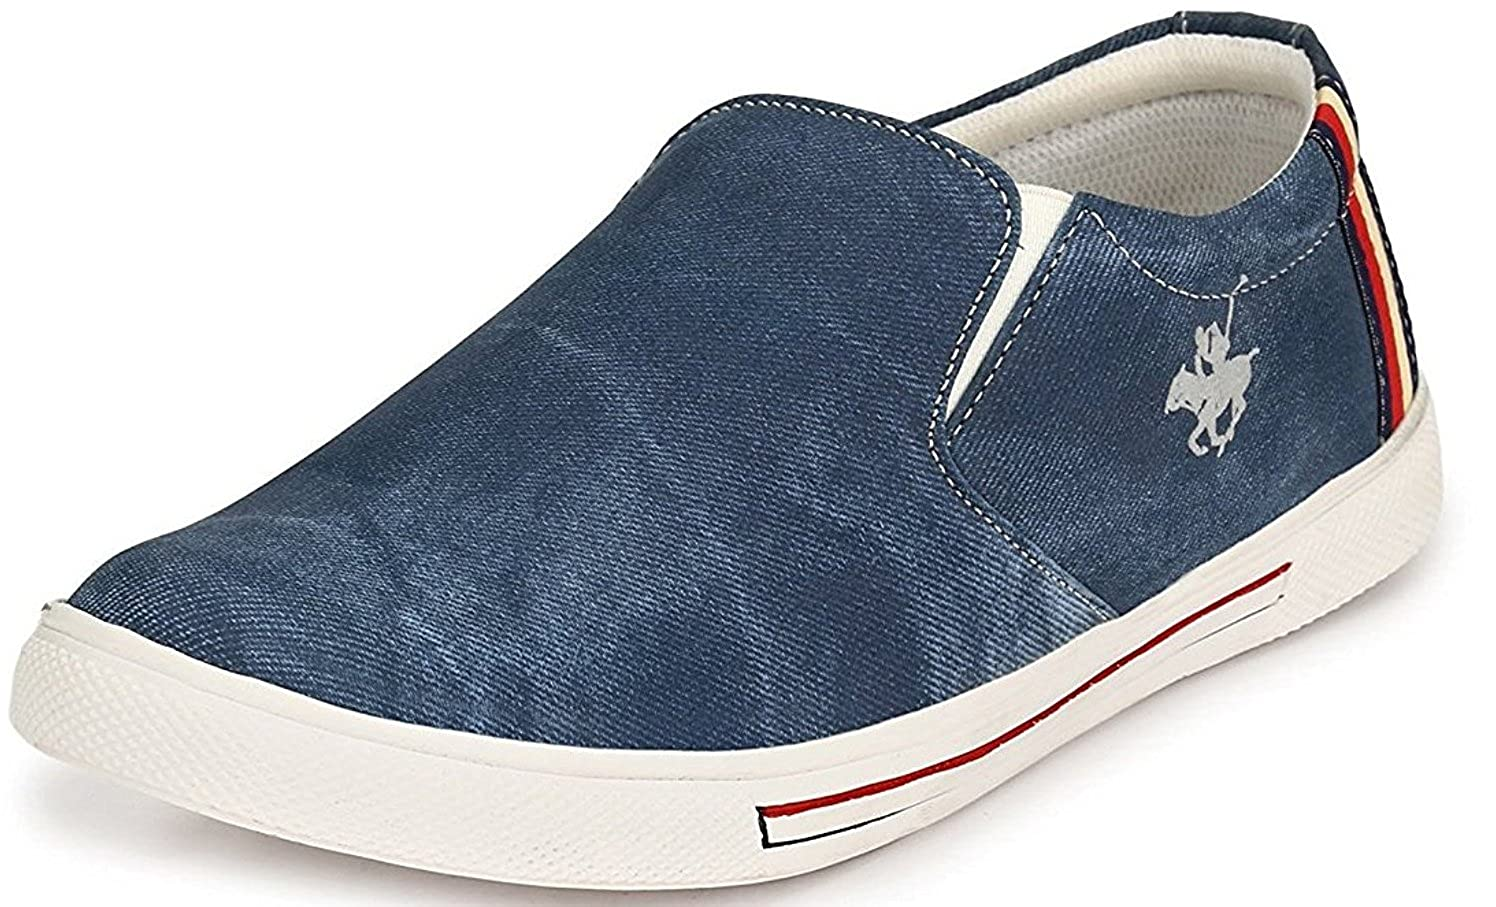 Blue Denim Jeans Casual Loafers Shoes